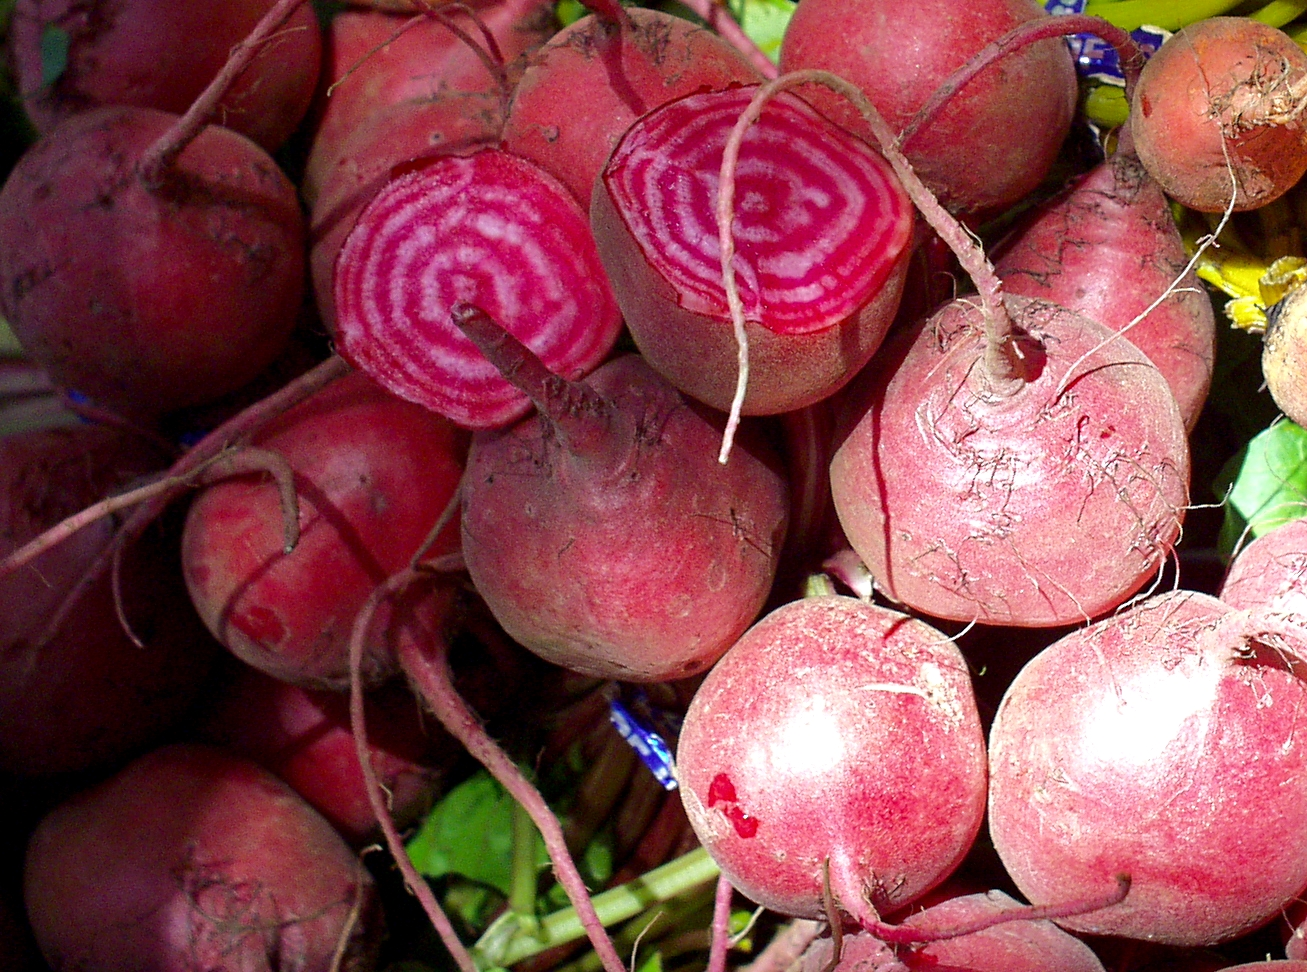 Chiogga beets from Boistfort Valley. Photo copyright 2009 by Zachary D. Lyons.